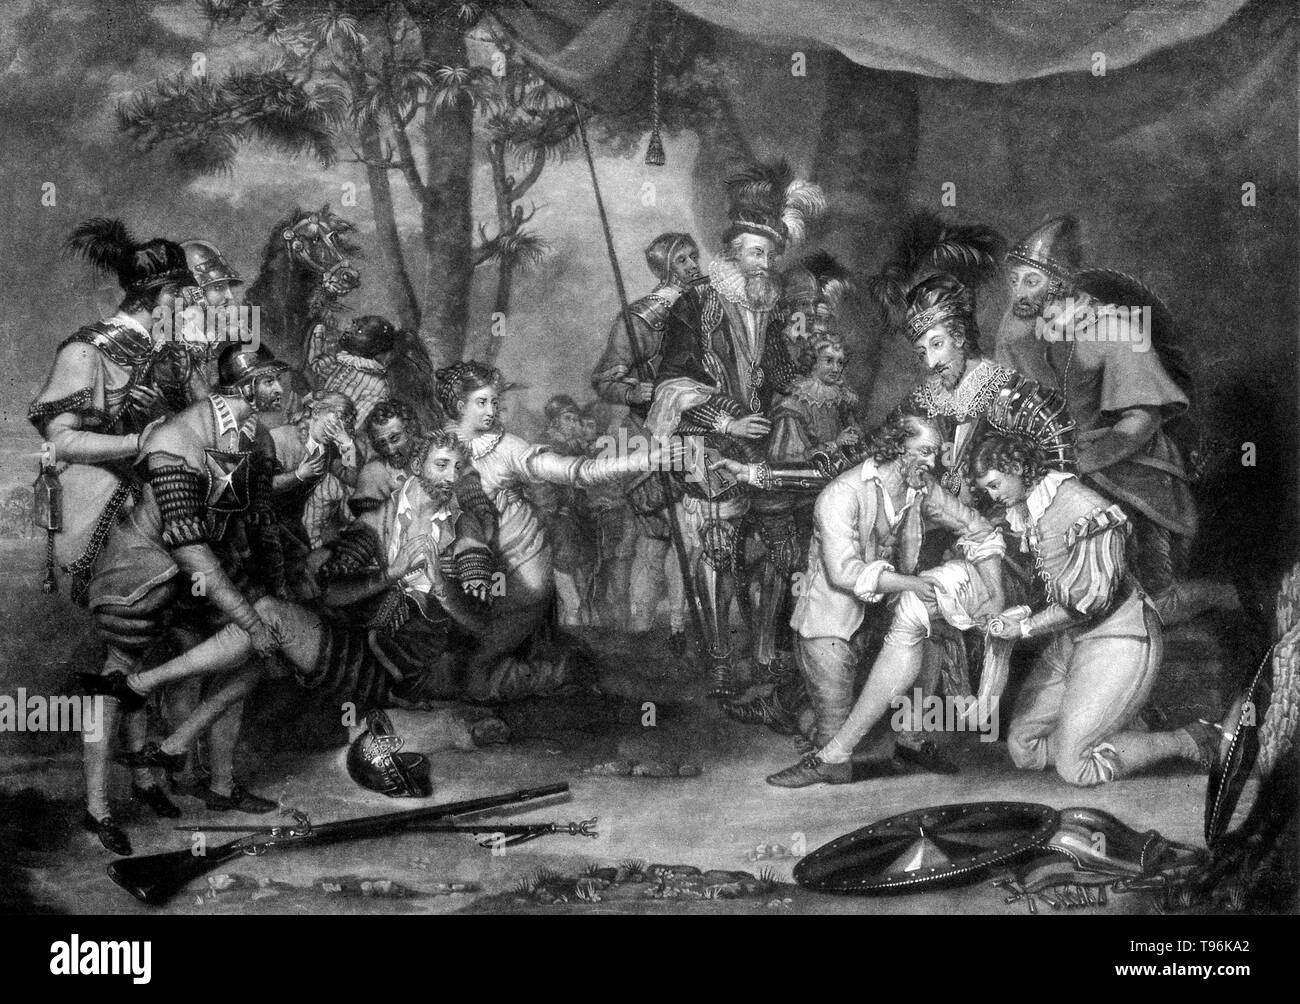 The death of Sir Philip Sidney at the battle of Zutphen: he passes the water to the soldier. Sir Philip Sidney (November 30, 1554 - October 17, 1586) was an English poet, courtier, scholar, and soldier, who is remembered as one of the most prominent figures of the Elizabethan age. - Stock Image